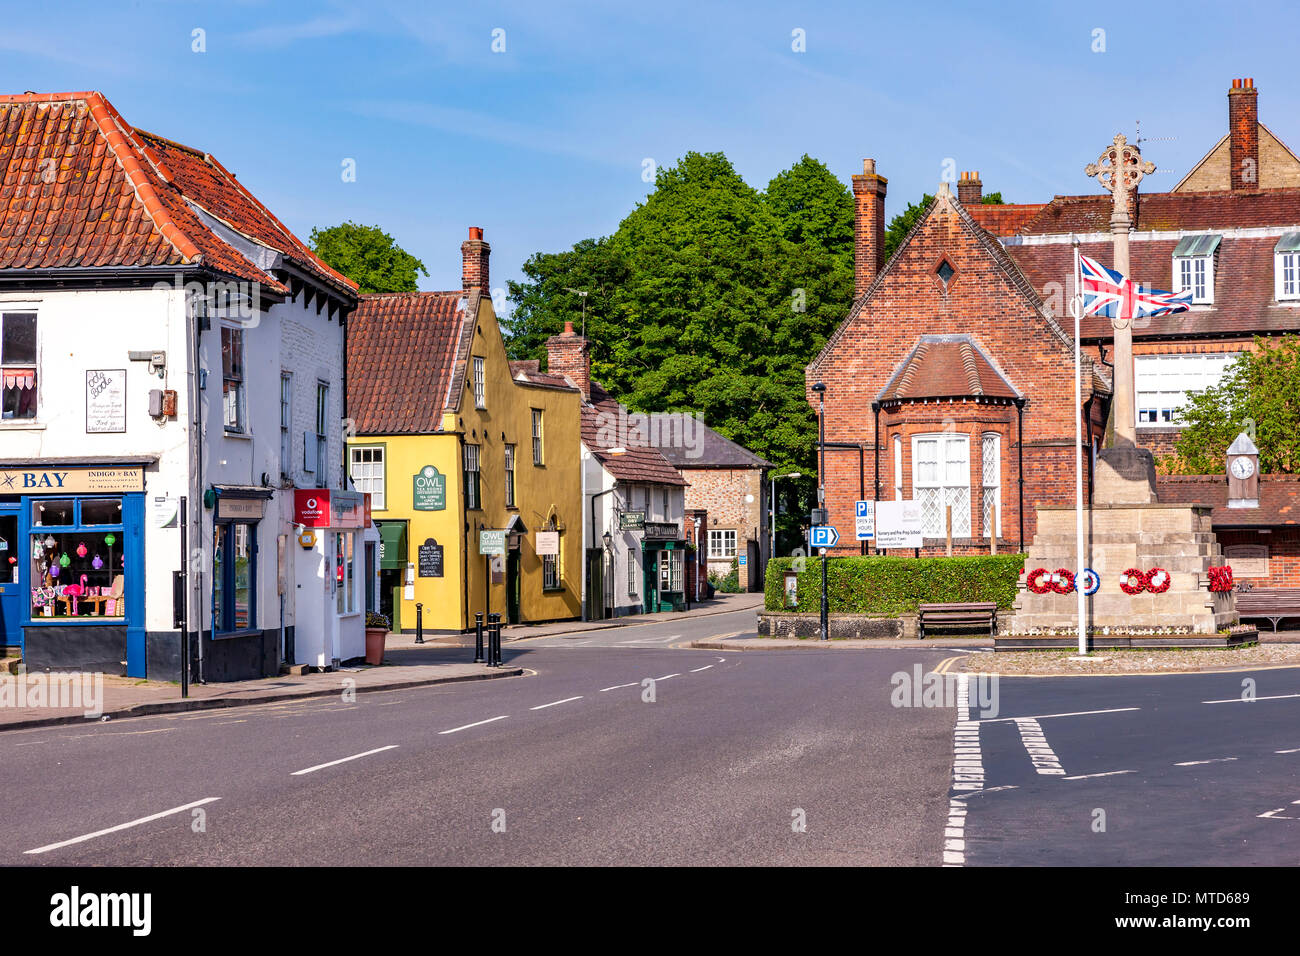 Holt a Georgian town in Norfolk. England. UK. - Stock Image